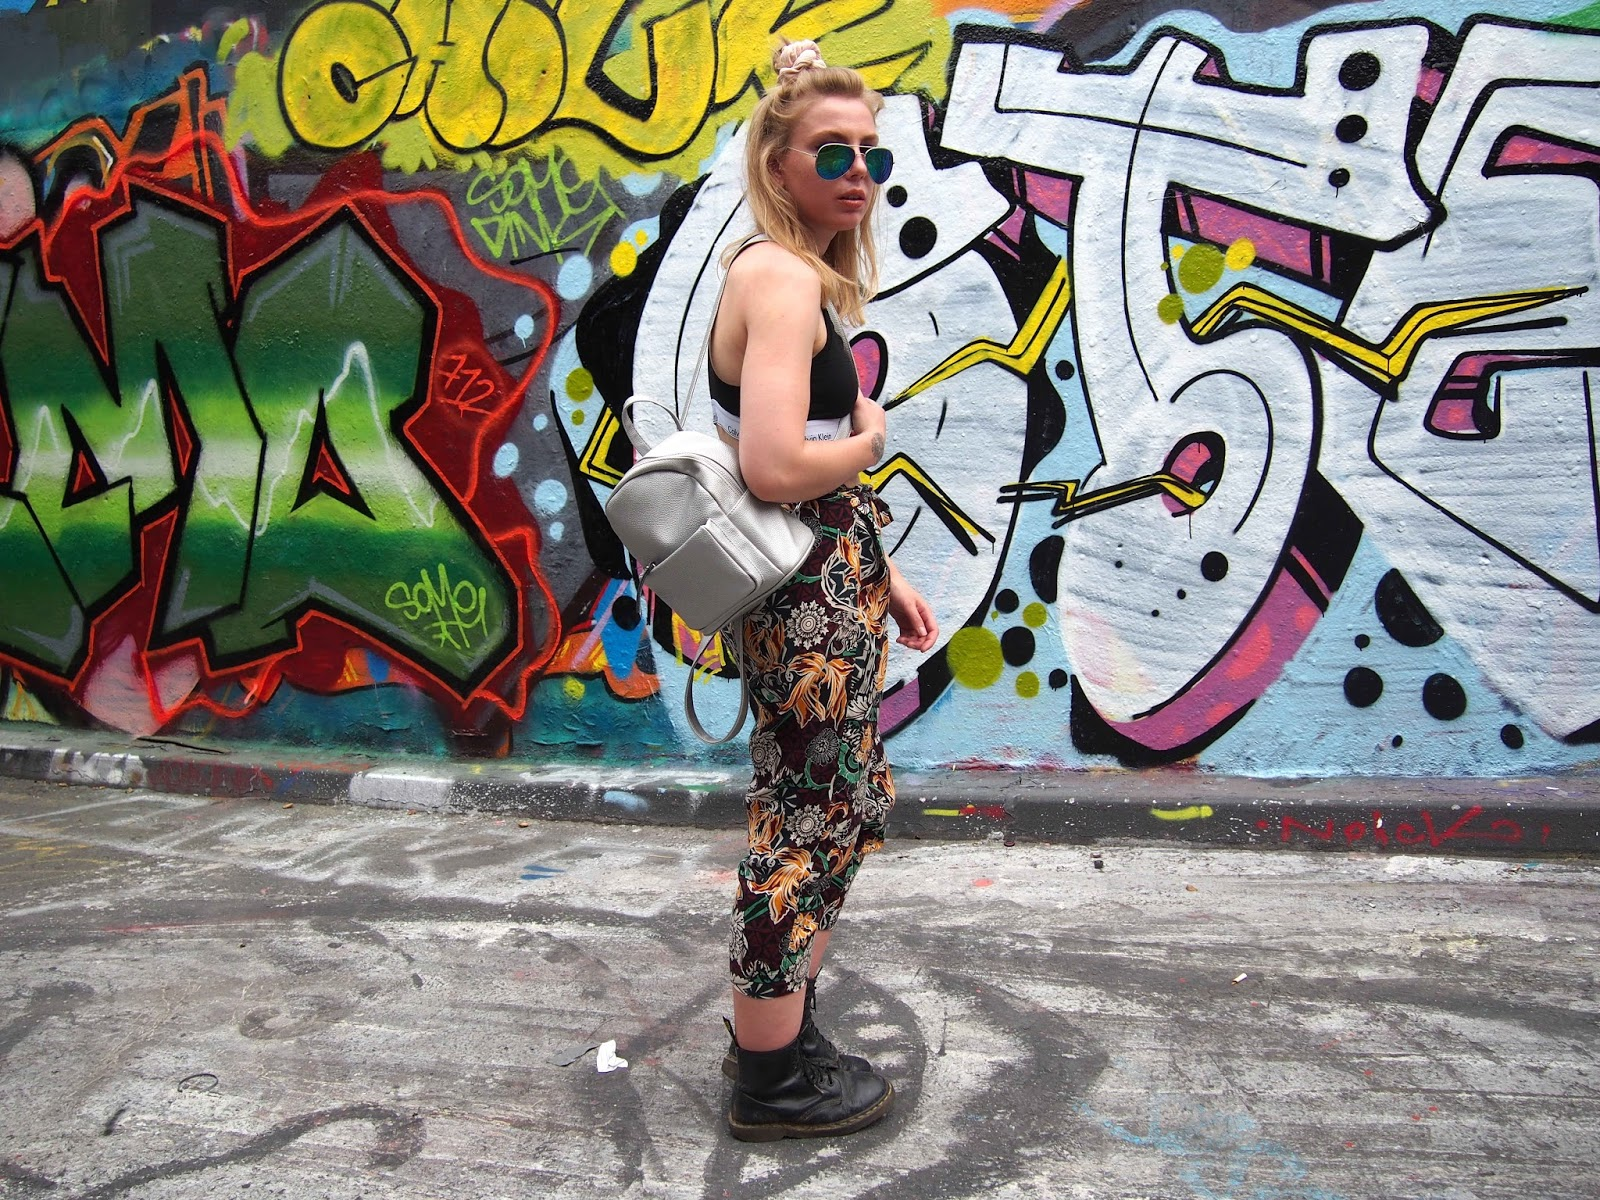 street art ootd, festival grunge outfit, comfy patterned casual trousers, calvin klein bralette, dr martens, reflective mirrored aviator sunglasses, choker, mini silver backpack 2